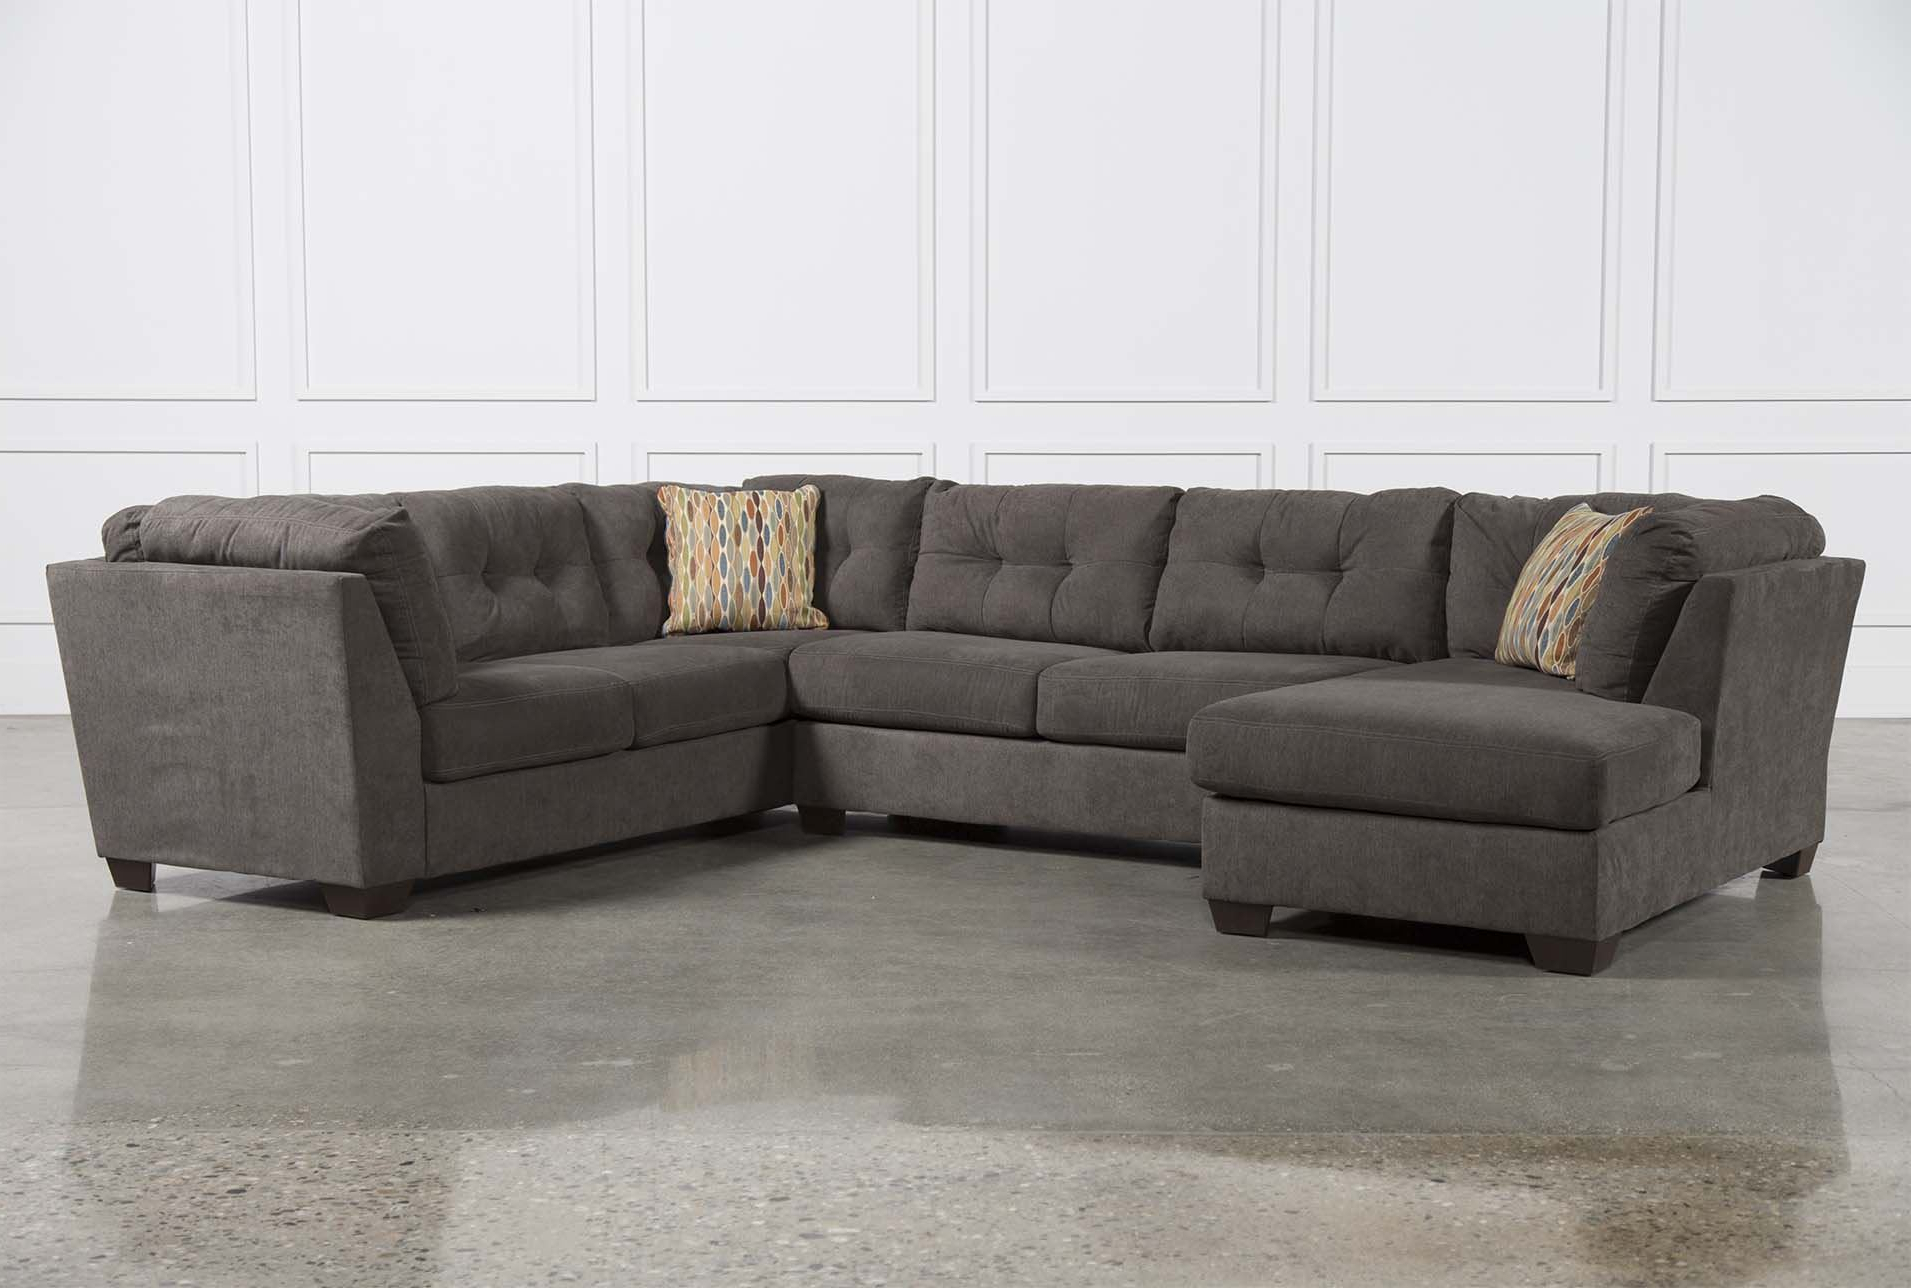 Widely Used Malbry Point 3 Piece Sectionals With Laf Chaise Inside Http://tidex/sectional Sofa Beds (View 20 of 20)